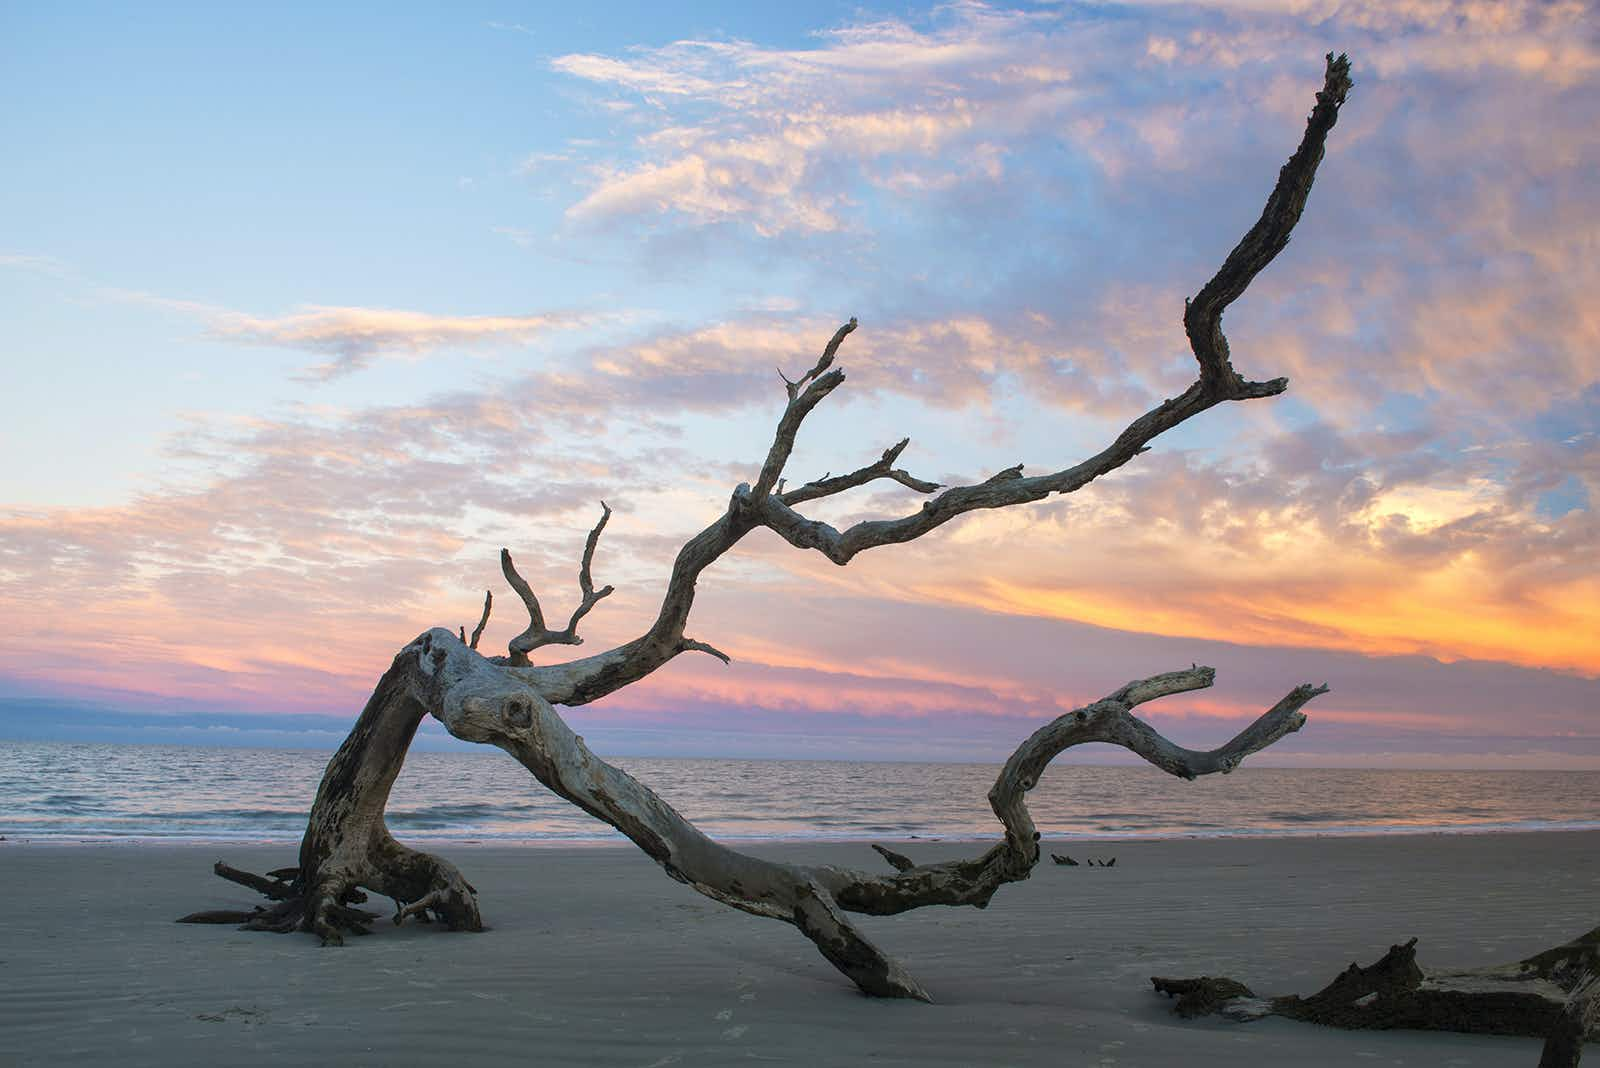 A branch lies on the beach at sunset on Driftwood Beach in Jekyll Island © Christian Herb